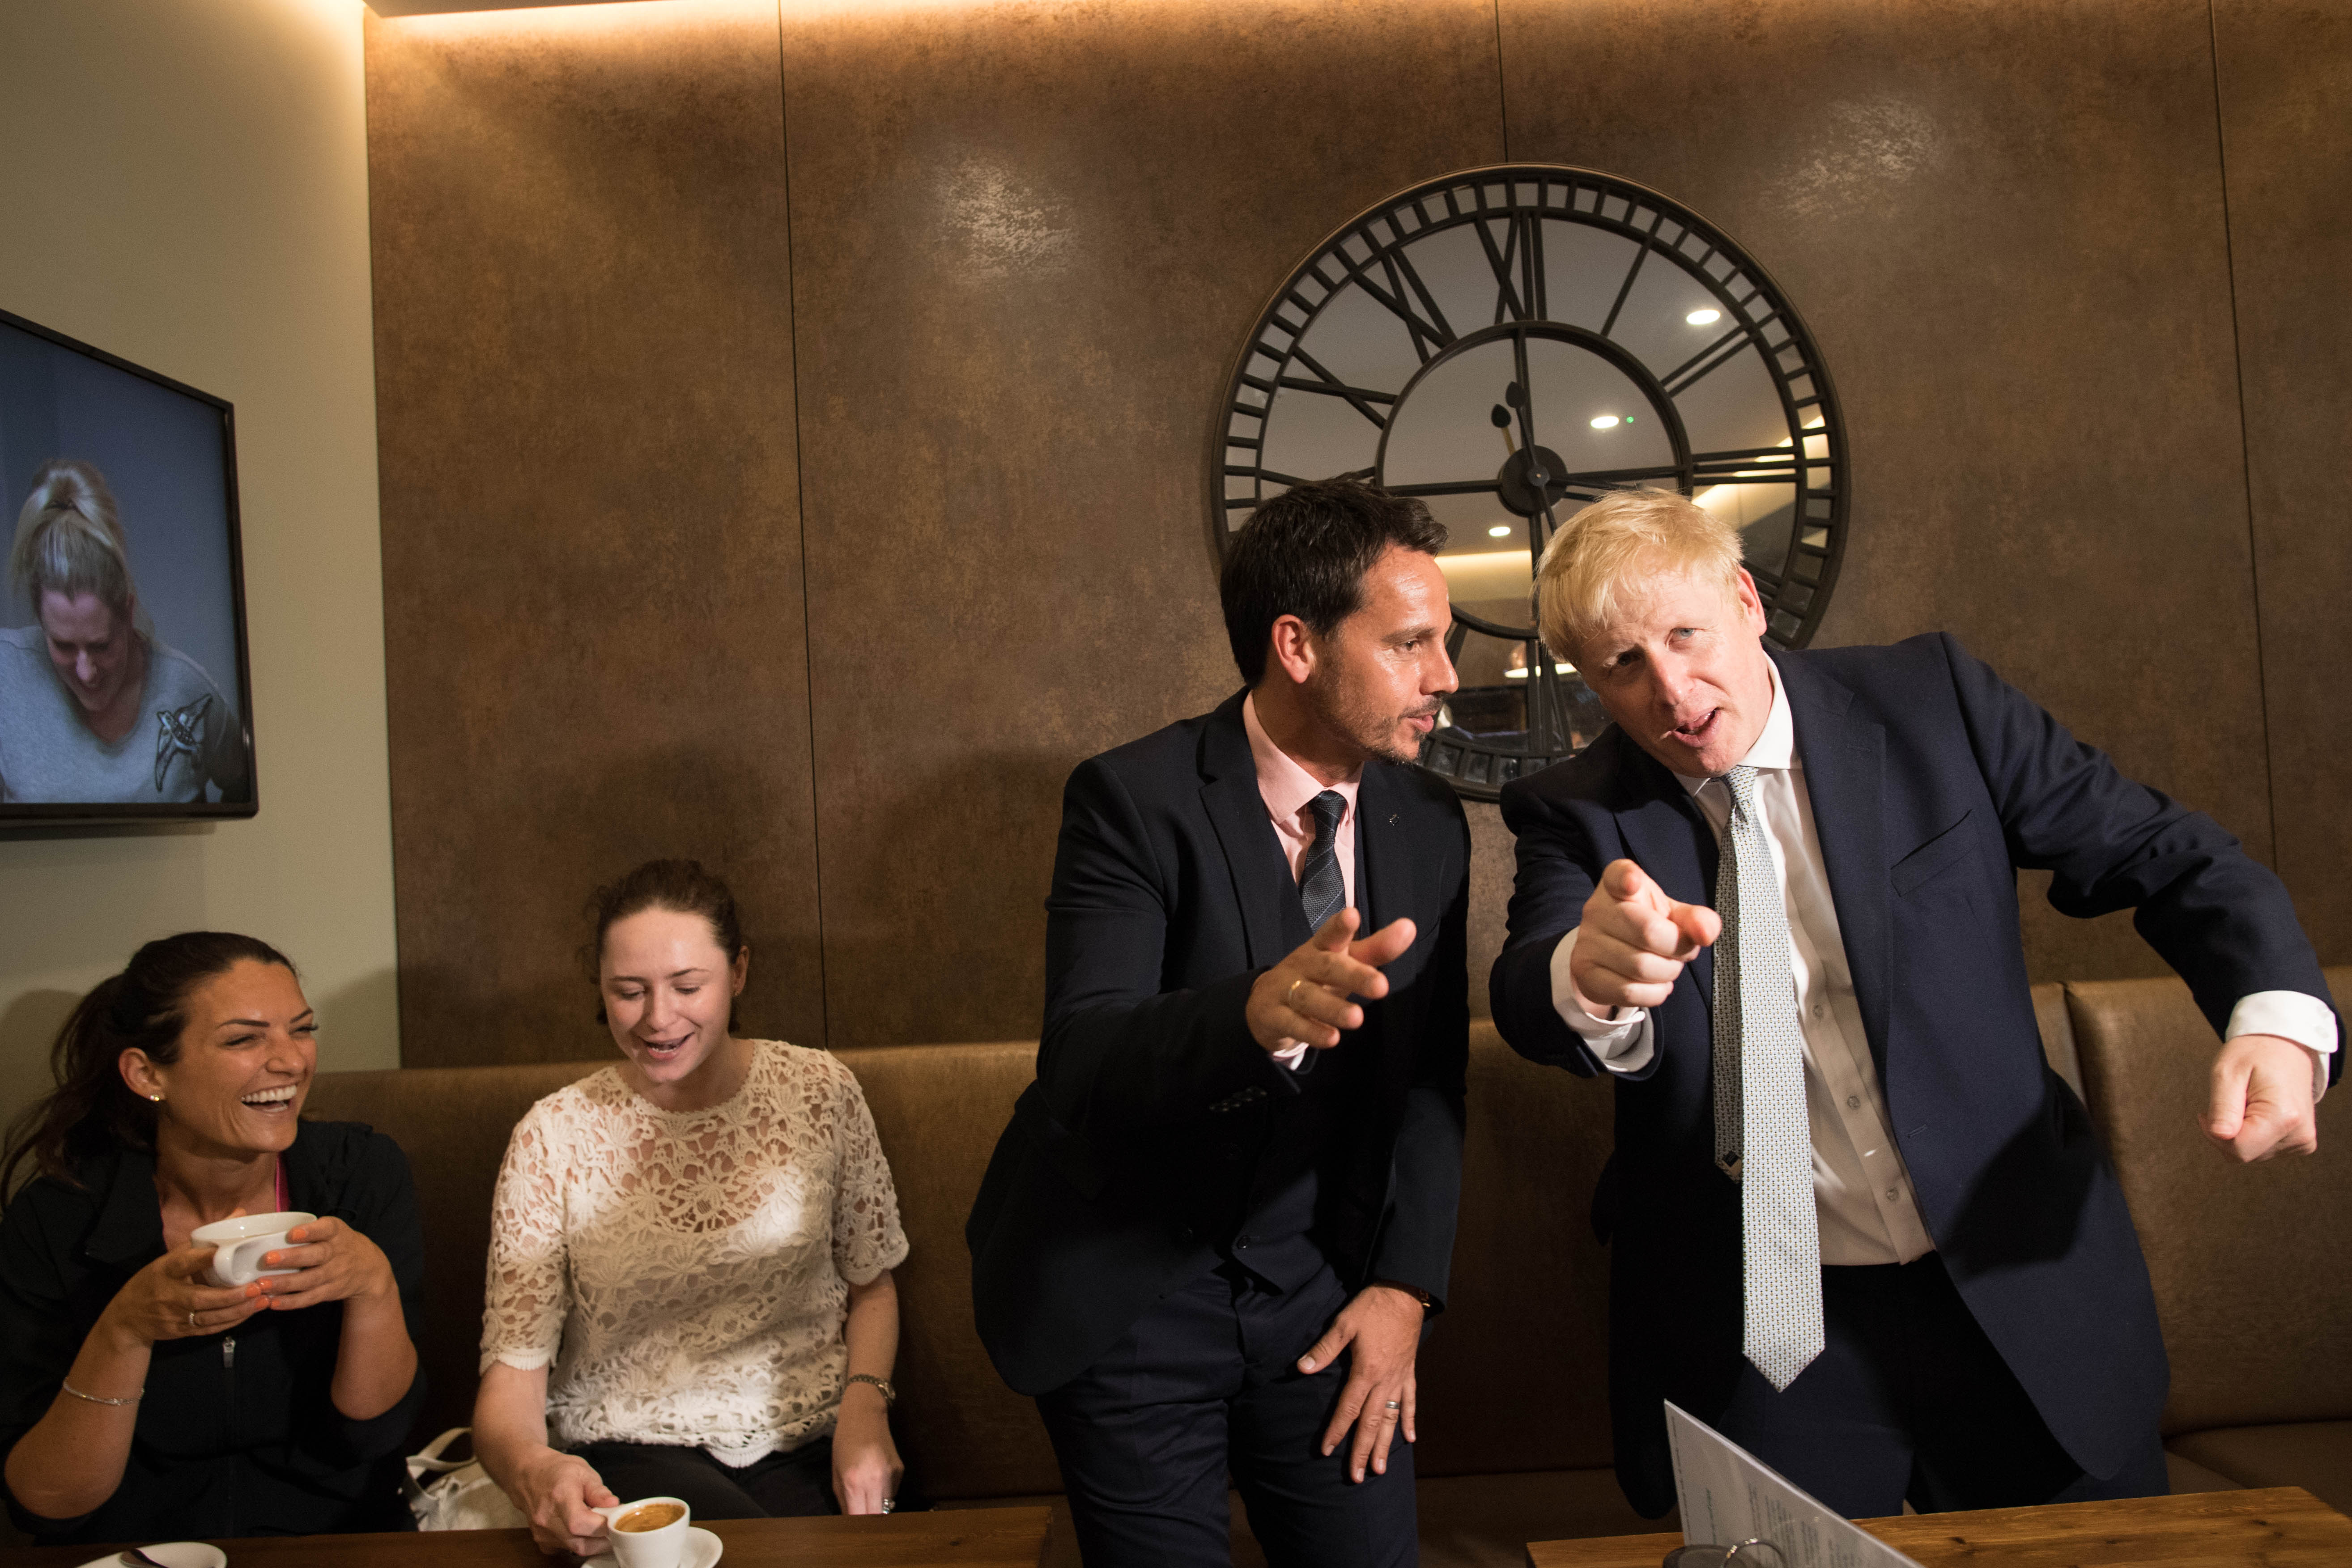 Conservative party leadership candidate Boris Johnson (right) interacts with local business people in the Munch and Wiggles cafe in Oxshott, Surrey.